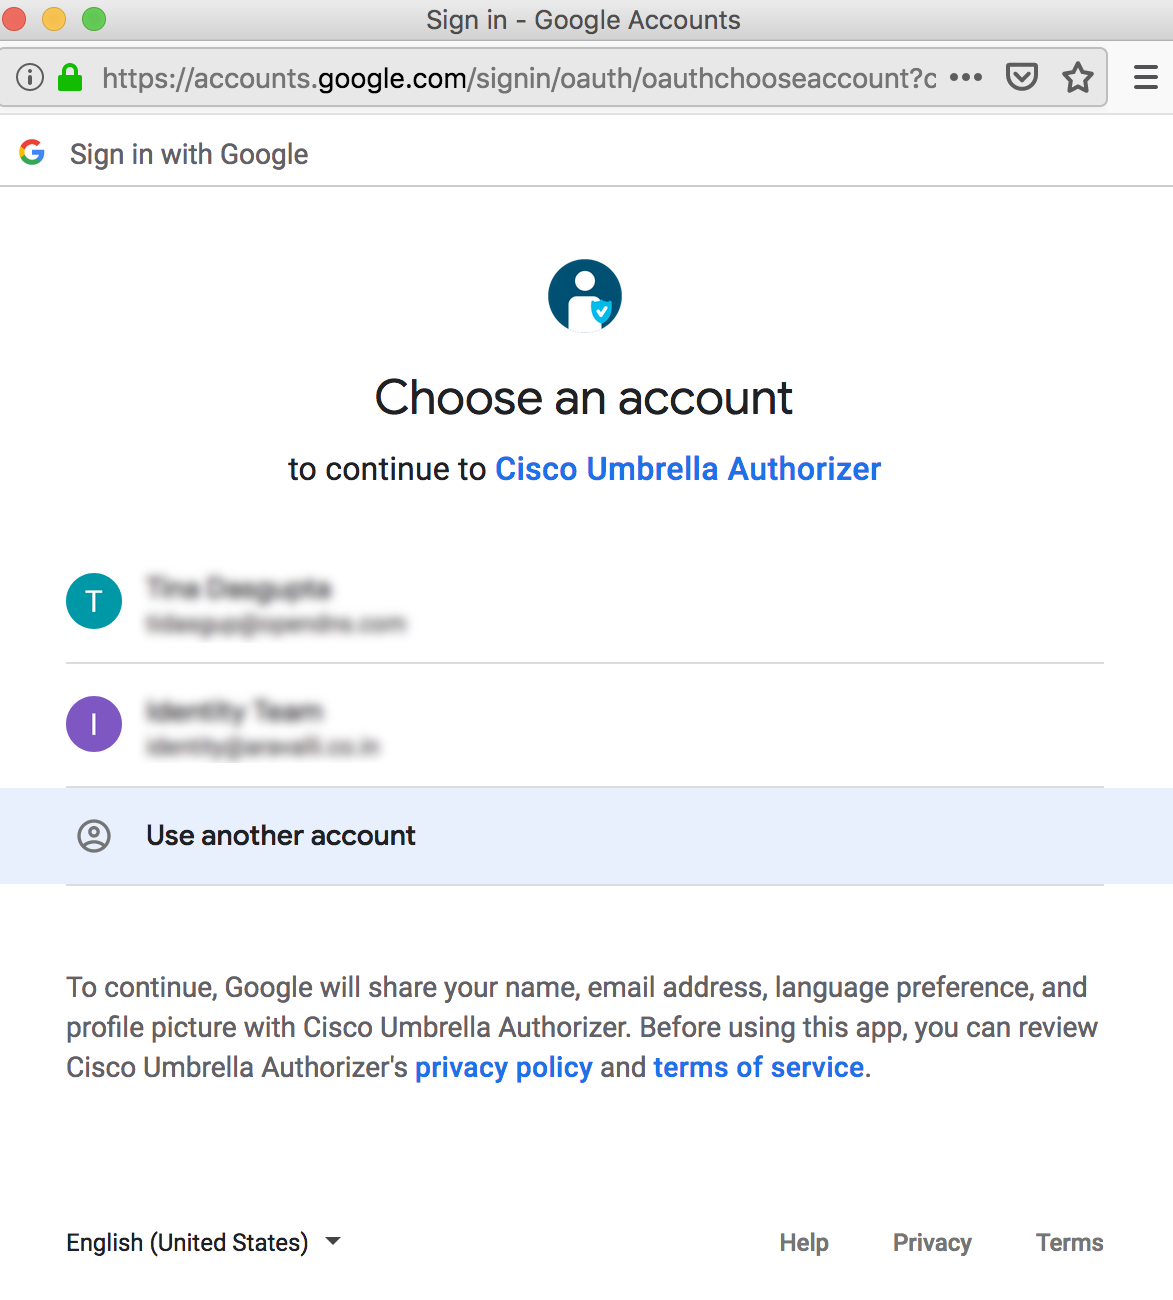 Deploy the G Suite Identity Service